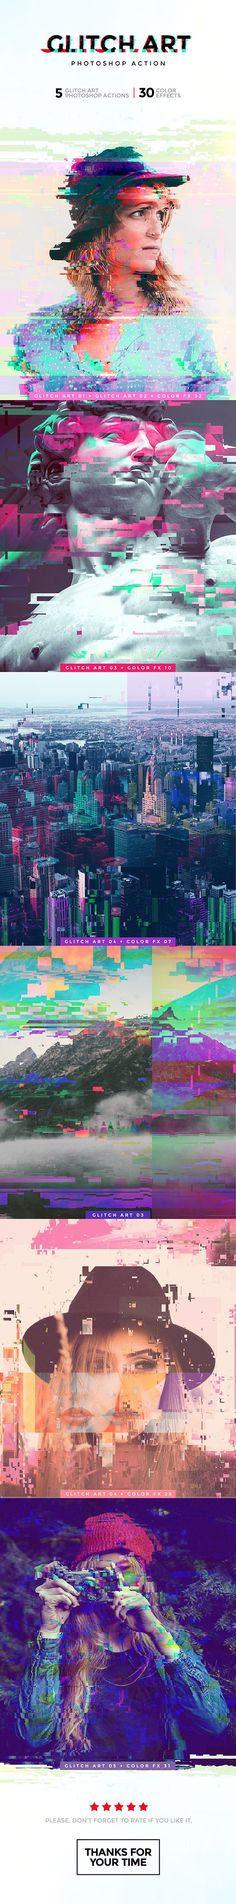 DOWNLOAD: https://goo.gl/hI53zk PHOTOSHOP CONFIGURATION: Use Photoshop english version; RGB color mode 8 bit; Compatible with CS5, CS6 and CC. BEST RESULTS: Use high resolution images (1500px – 4000px). FILES INCLUDED: .atn file (5 glitch art actions and 32 different colors); .pdf with instructions and examples.